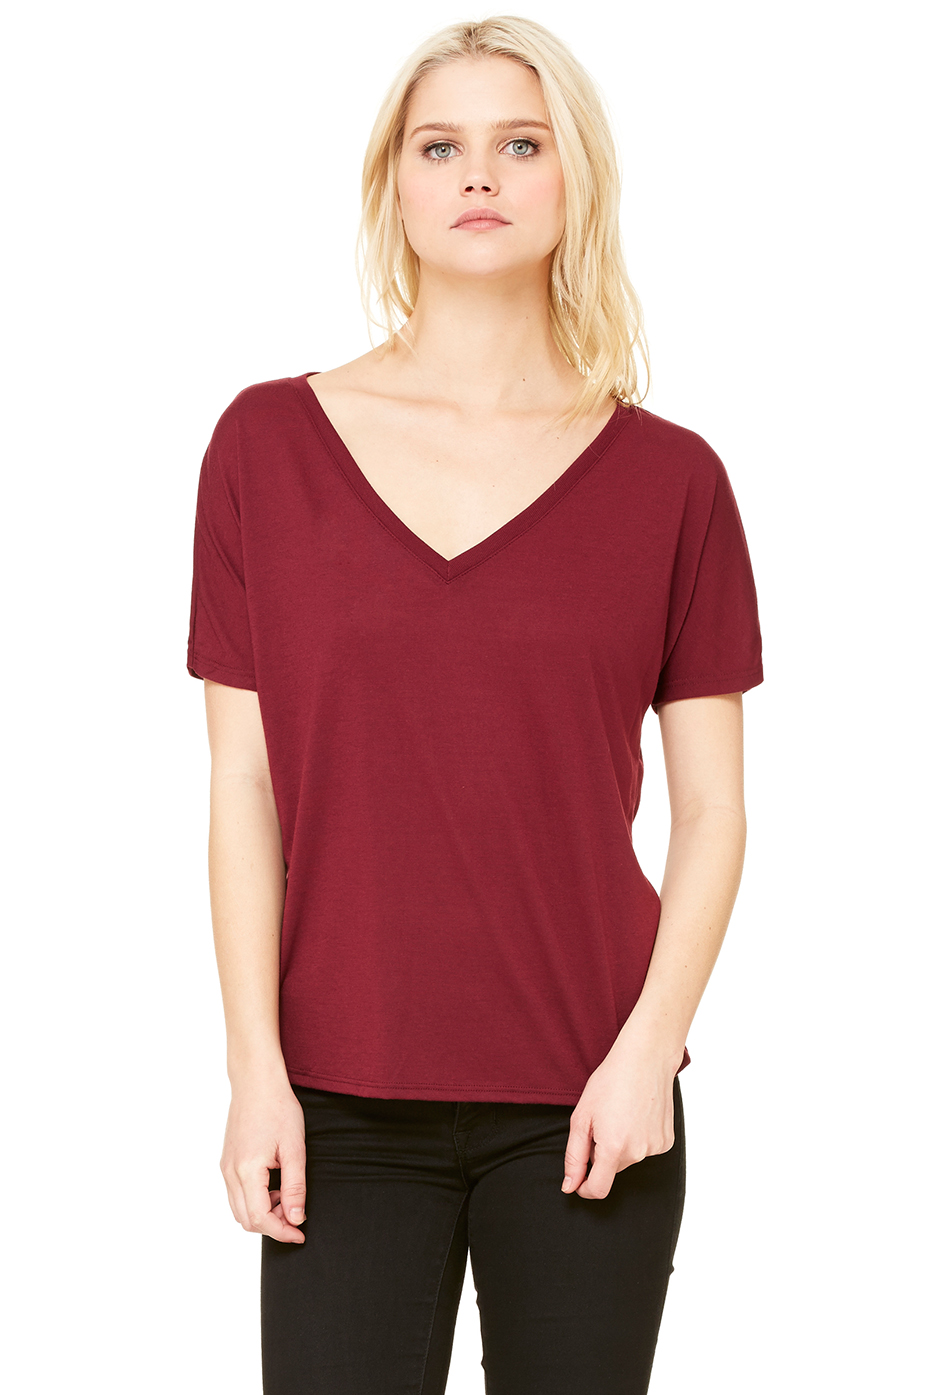 Shop for womens v neck tee online at Target. Free shipping on purchases over $35 and save 5% every day with your Target REDcard.